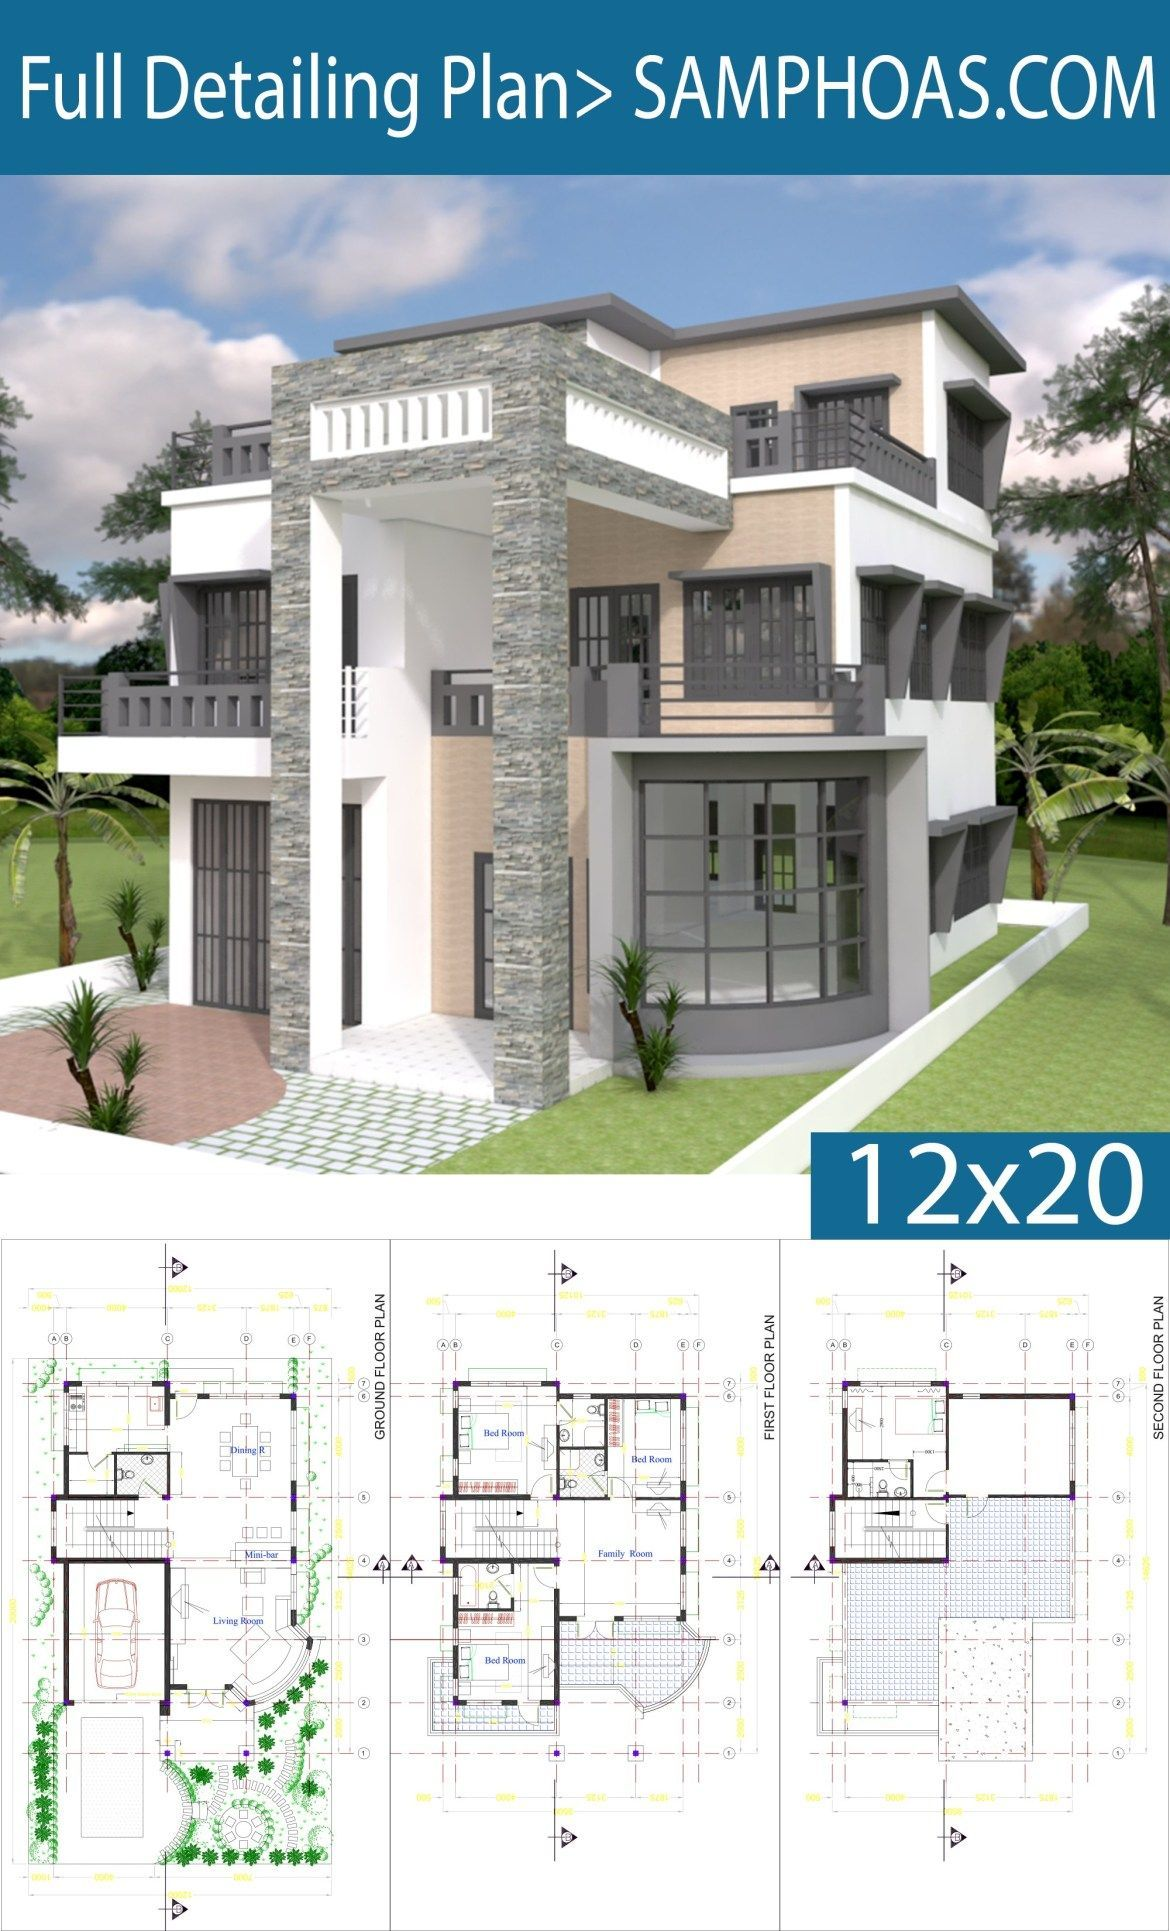 Modern House Plan 9x14 5m With 4 Bedrooms Samphoas Plansearch Luxuryhousebedrooms Modern House Floor Plans Modern House Plan House Layouts